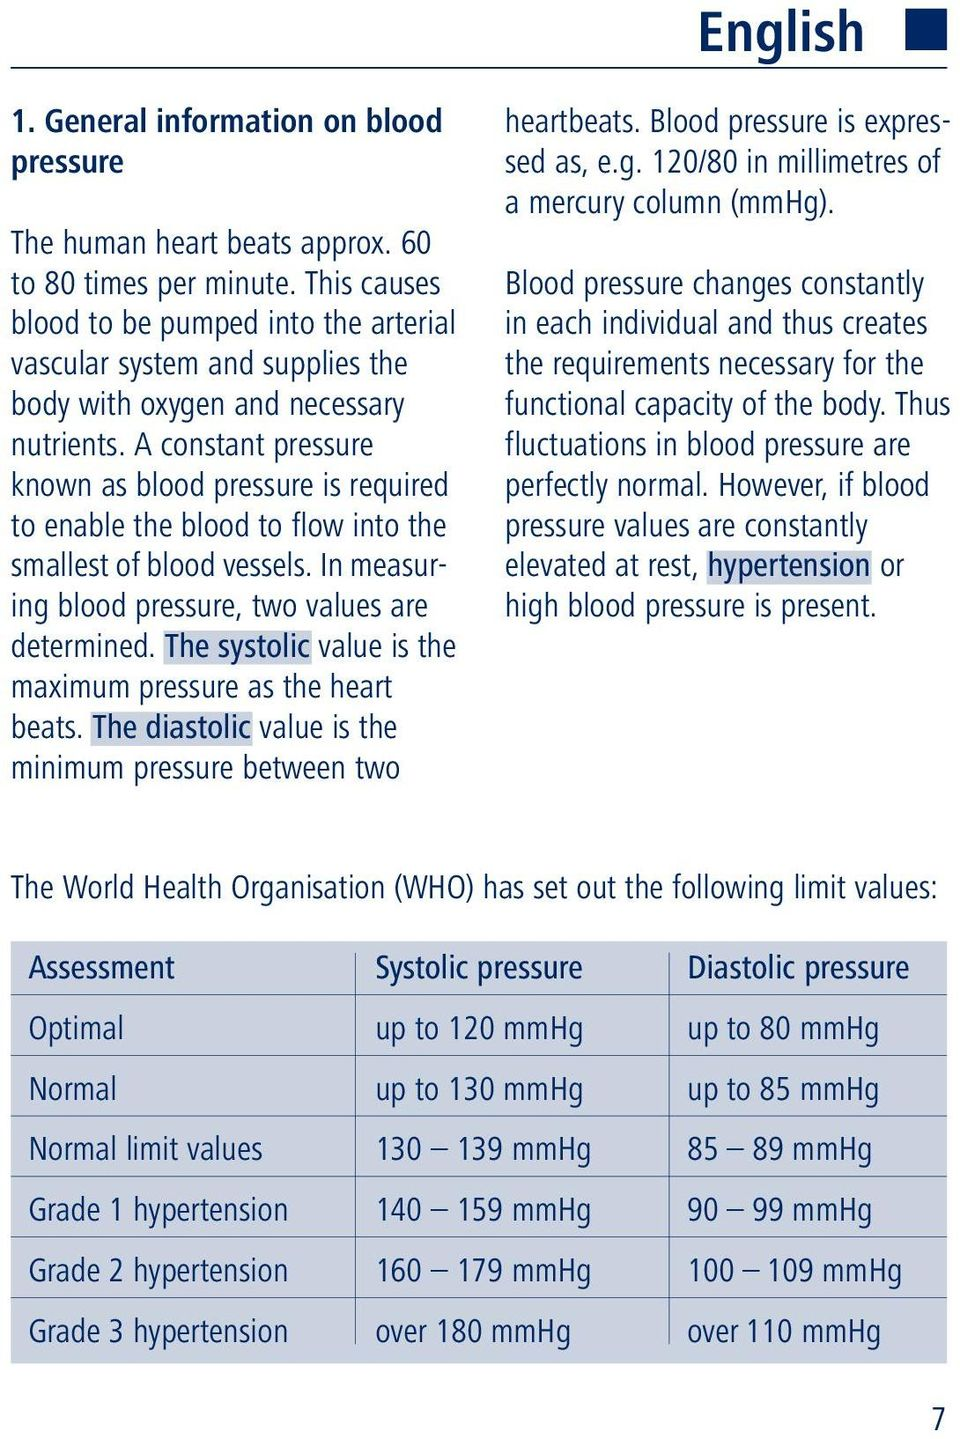 A constant pressure known as blood pressure is required to enable the blood to flow into the smallest of blood vessels. In measuring blood pressure, two values are determined.